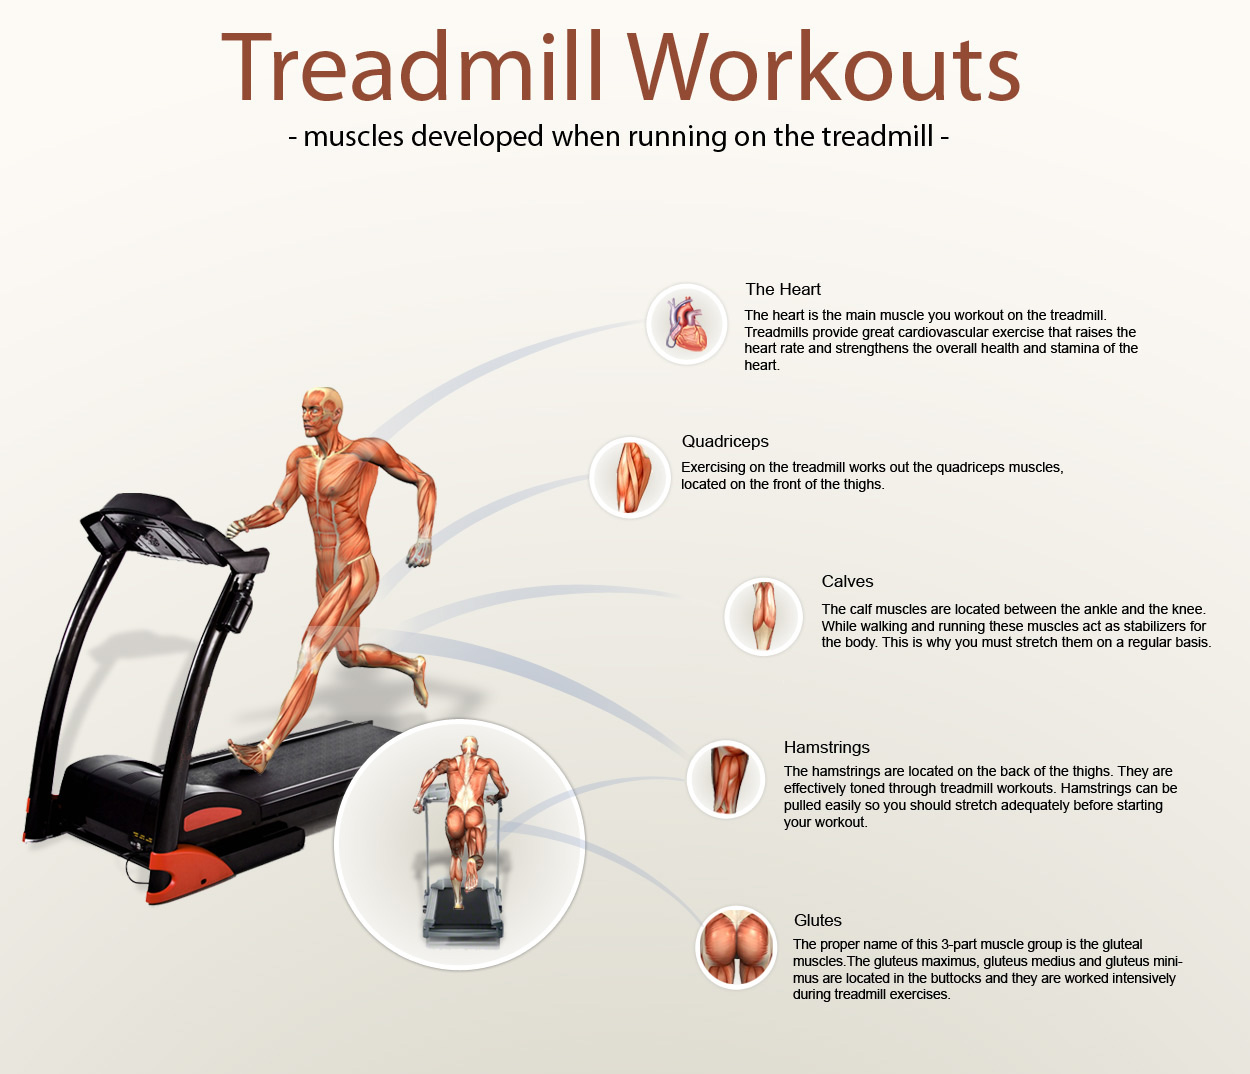 7 Benefits of Working on the Treadmill